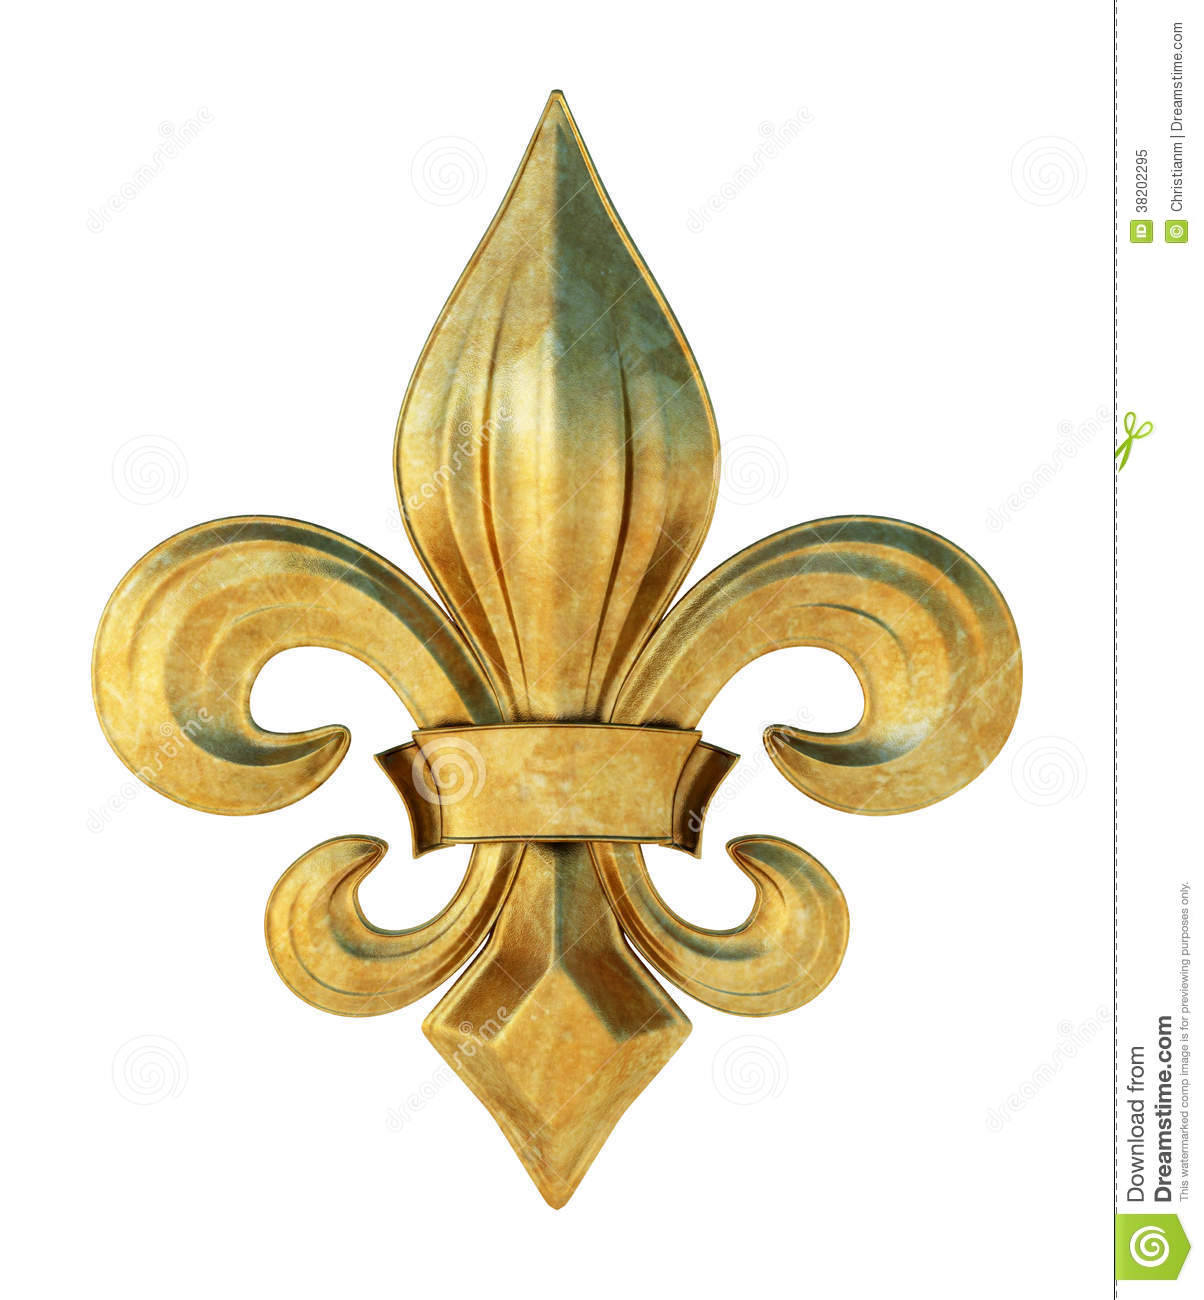 Fleur De Lis Stock Image Illustration Of Iris Ornate